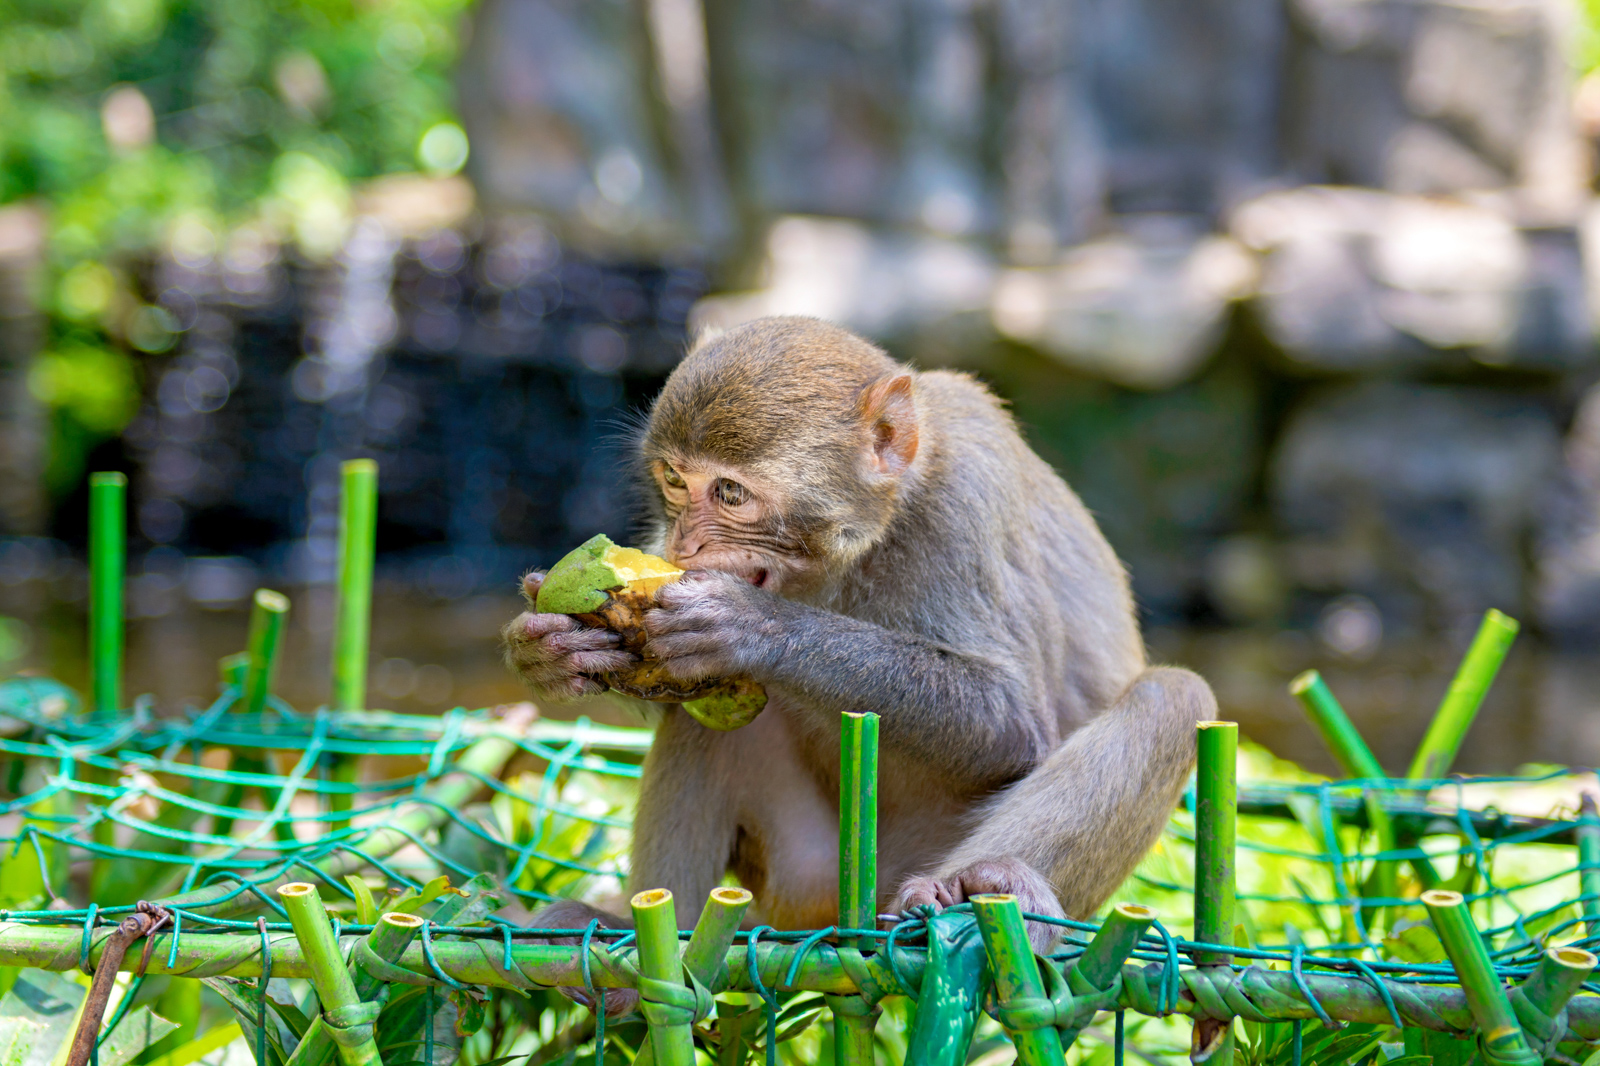 Monkey Jungle is one of the best tourist attractions in Miami Florida. Monkeys, small and big, plays and bask in the Sun. Monkey Island. Your guide for all the top Miami attractions and best things to do in Miami. There are Plenty of tourist attractions in Miami Florida. This Guide presented by Flying and Travel.